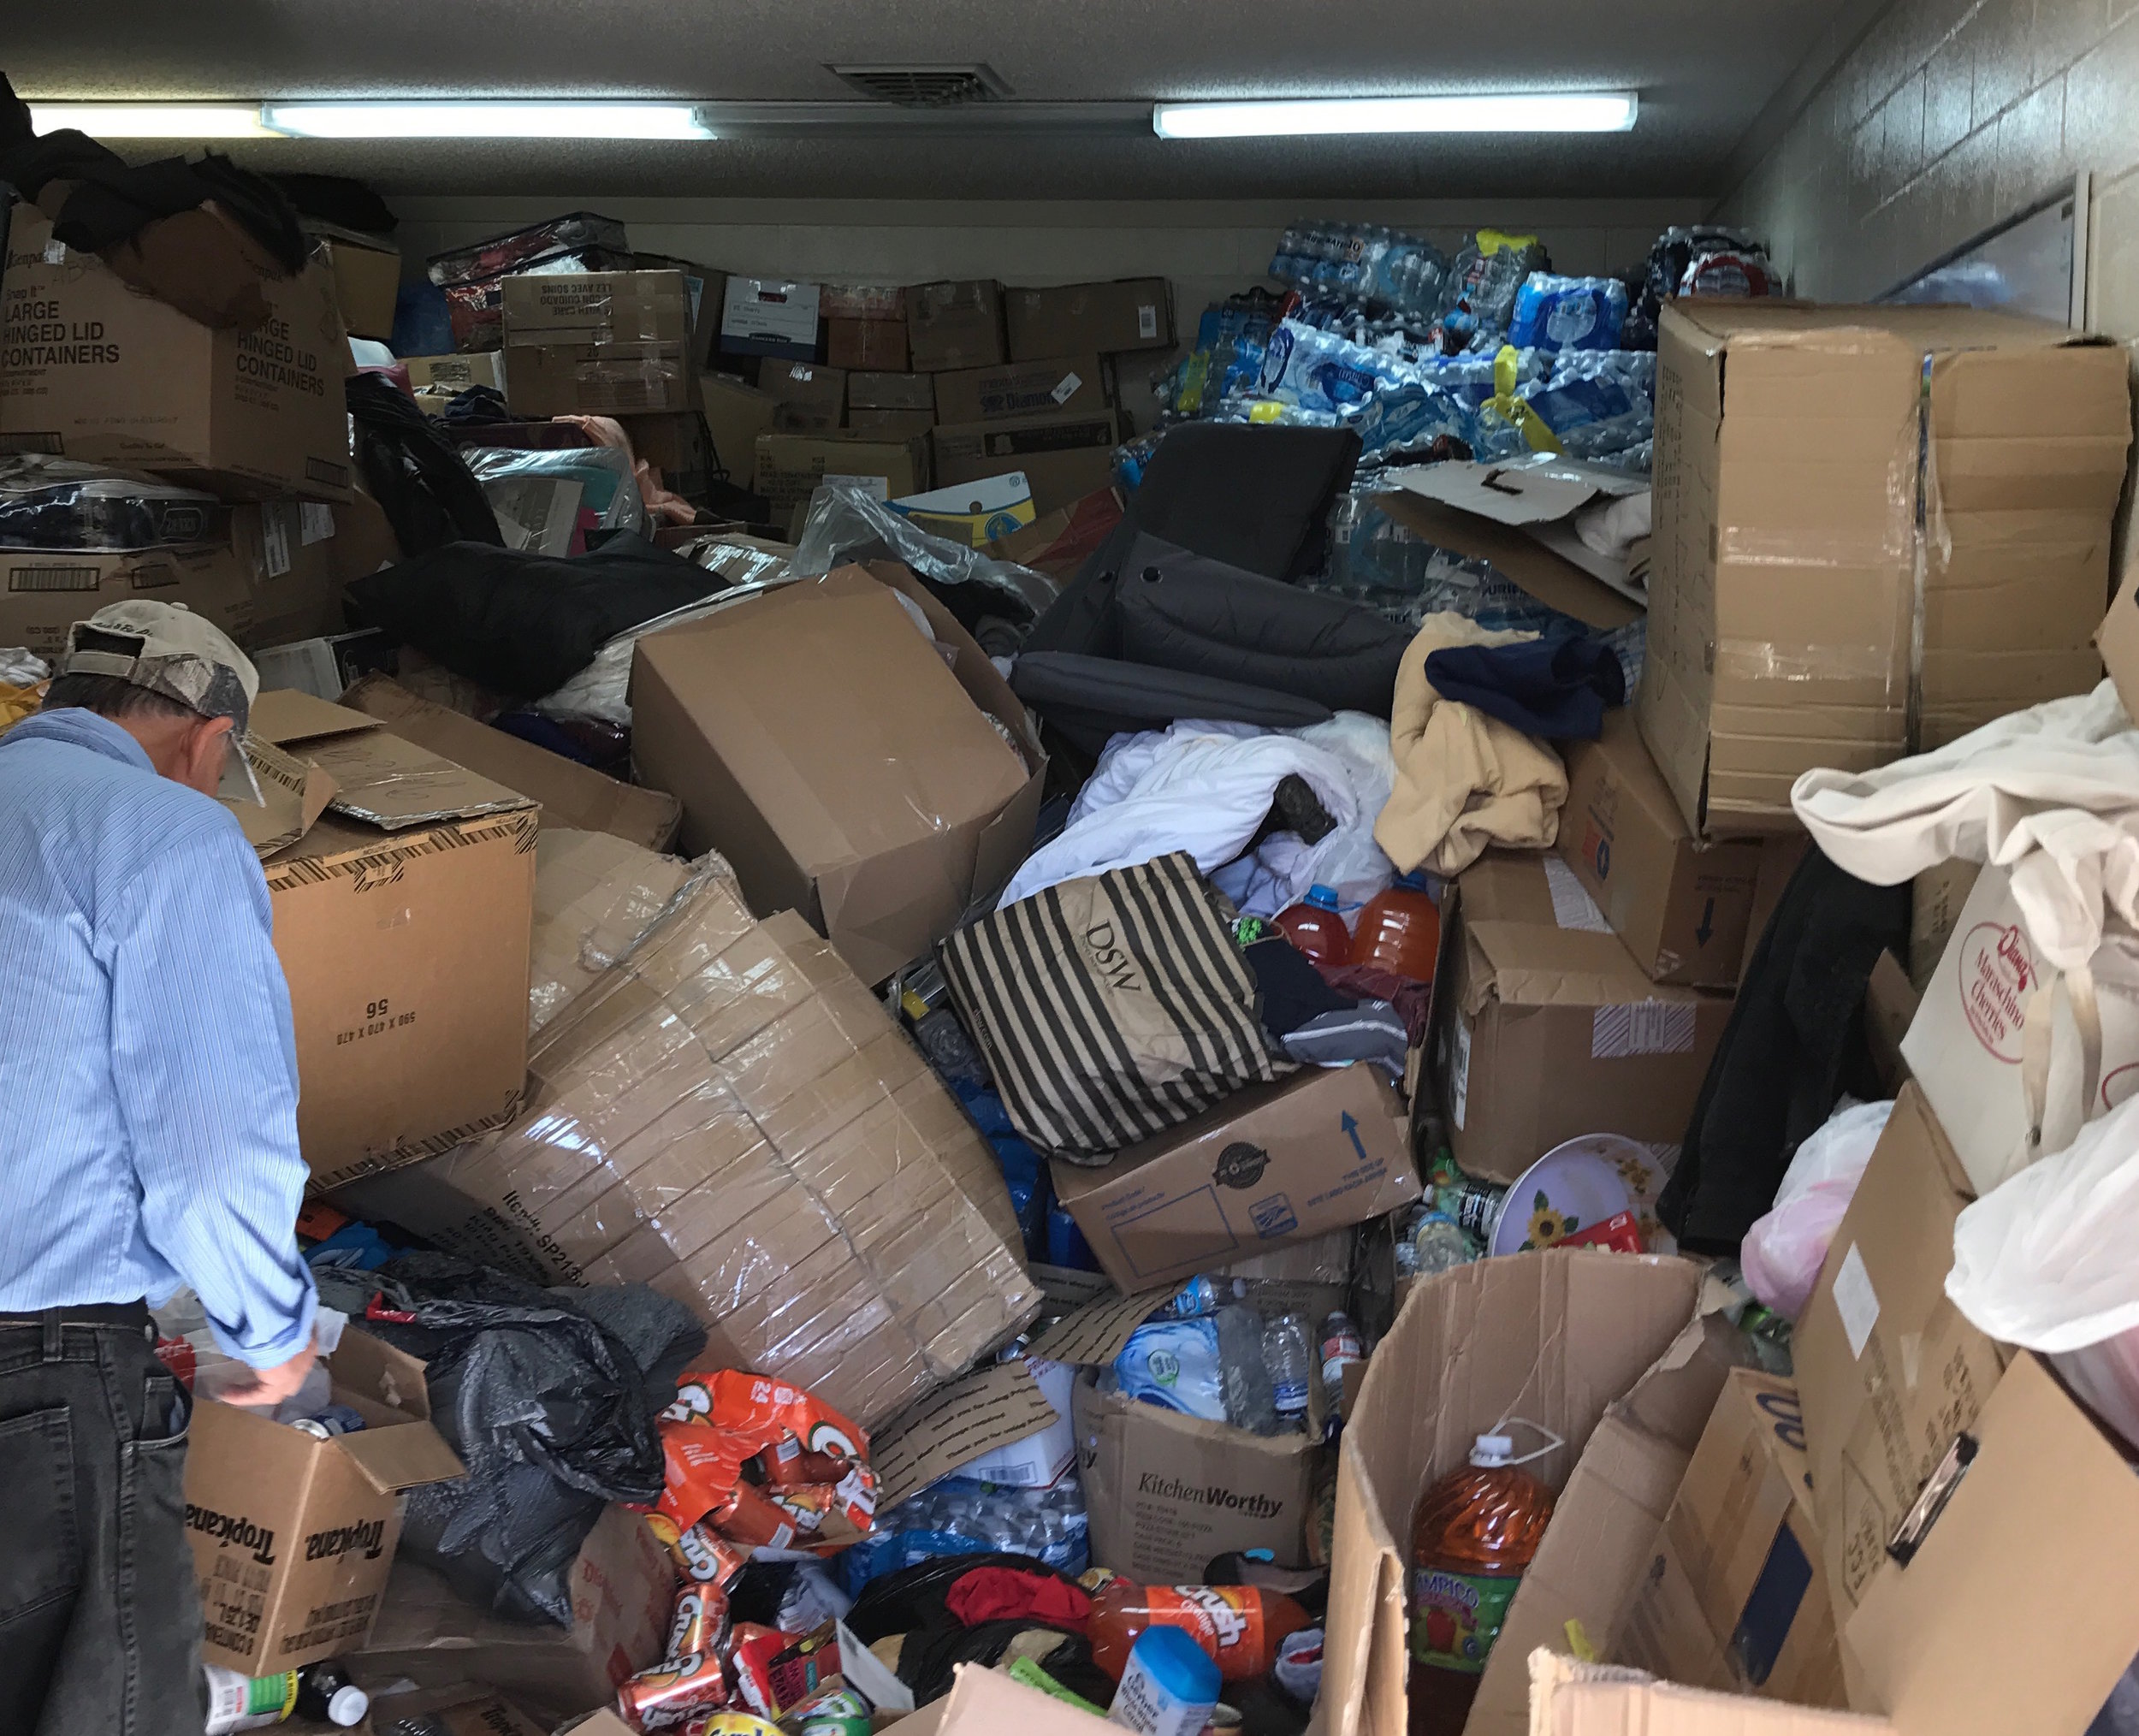 Donated clothing, food, water, and supplies to be sorted and organized for daily trips across to Nuevo Laredo to support the Cuban migrant community in limbo. The Holding Institute serves as the Laredo staging site for this ministry of hospitality and presence work.